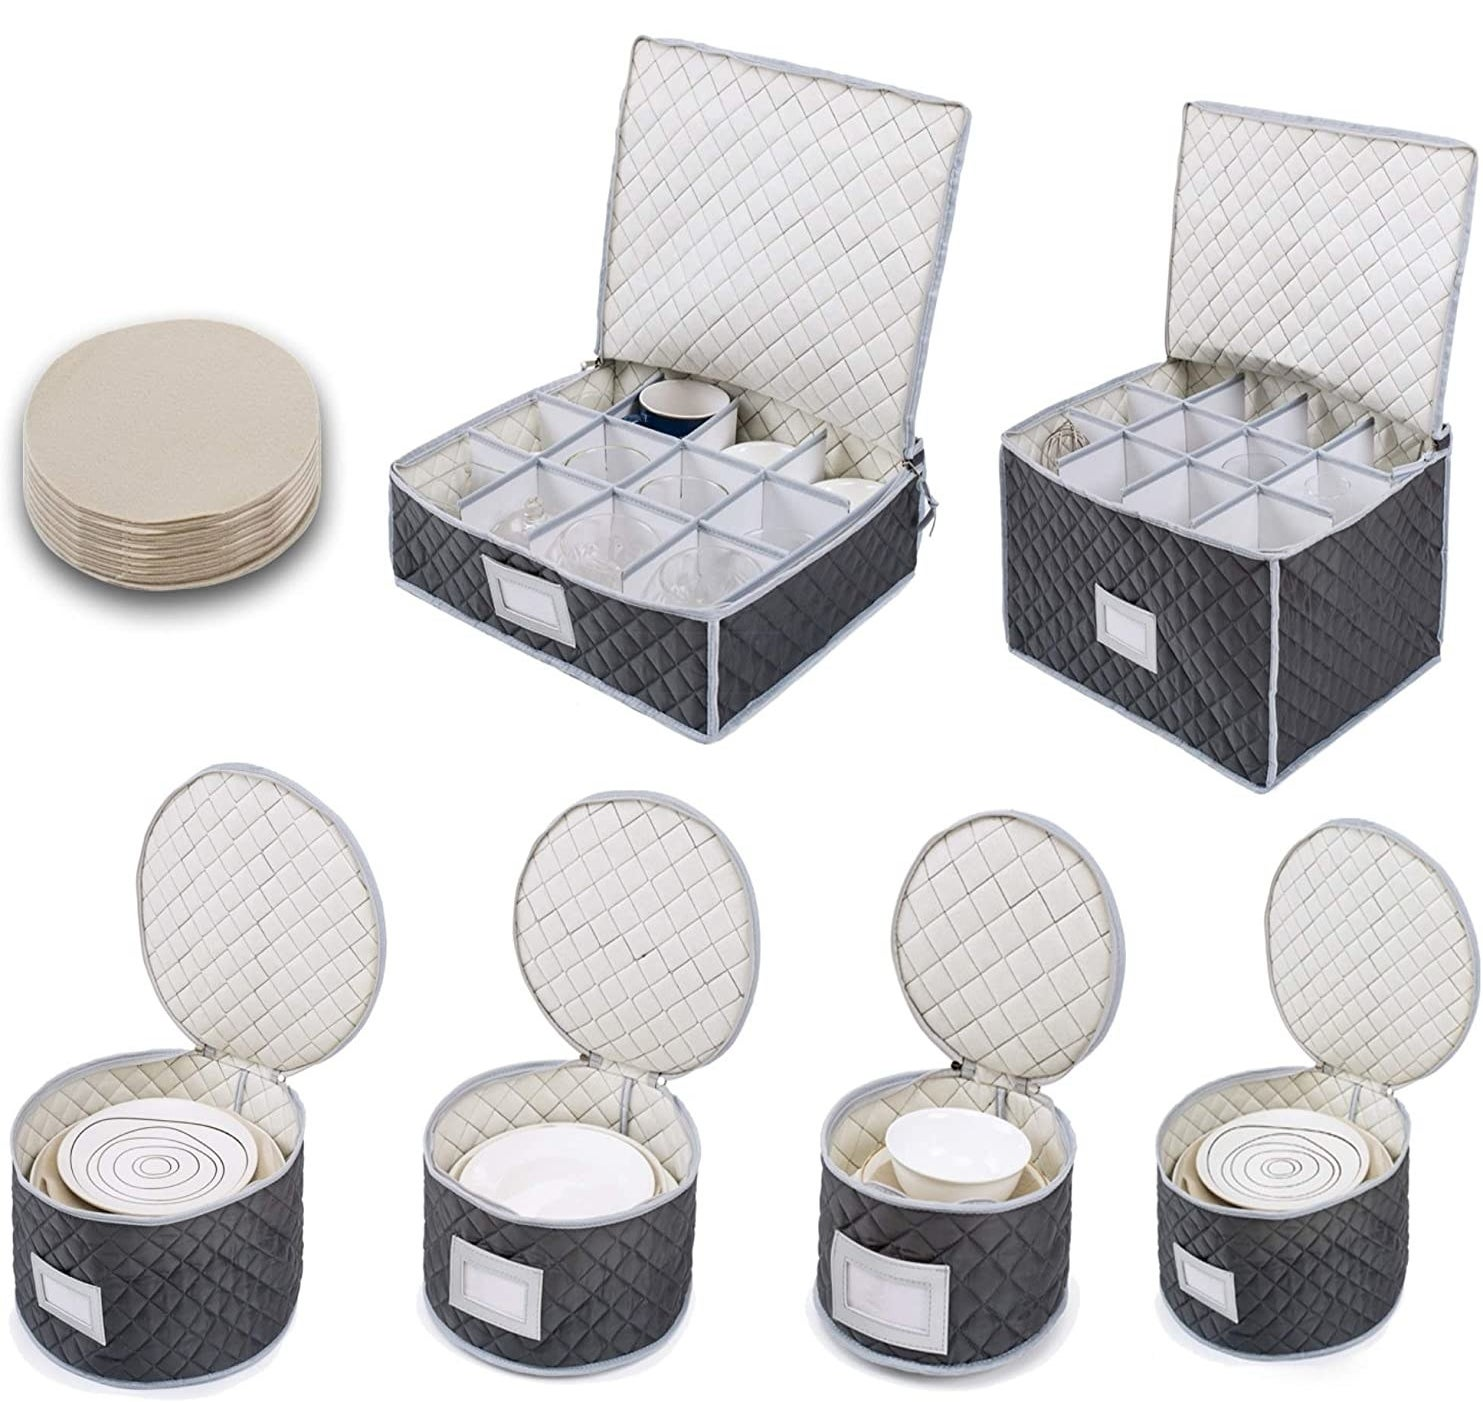 Round and square gray quilted boxes with zip-tops holding dishes and glasses